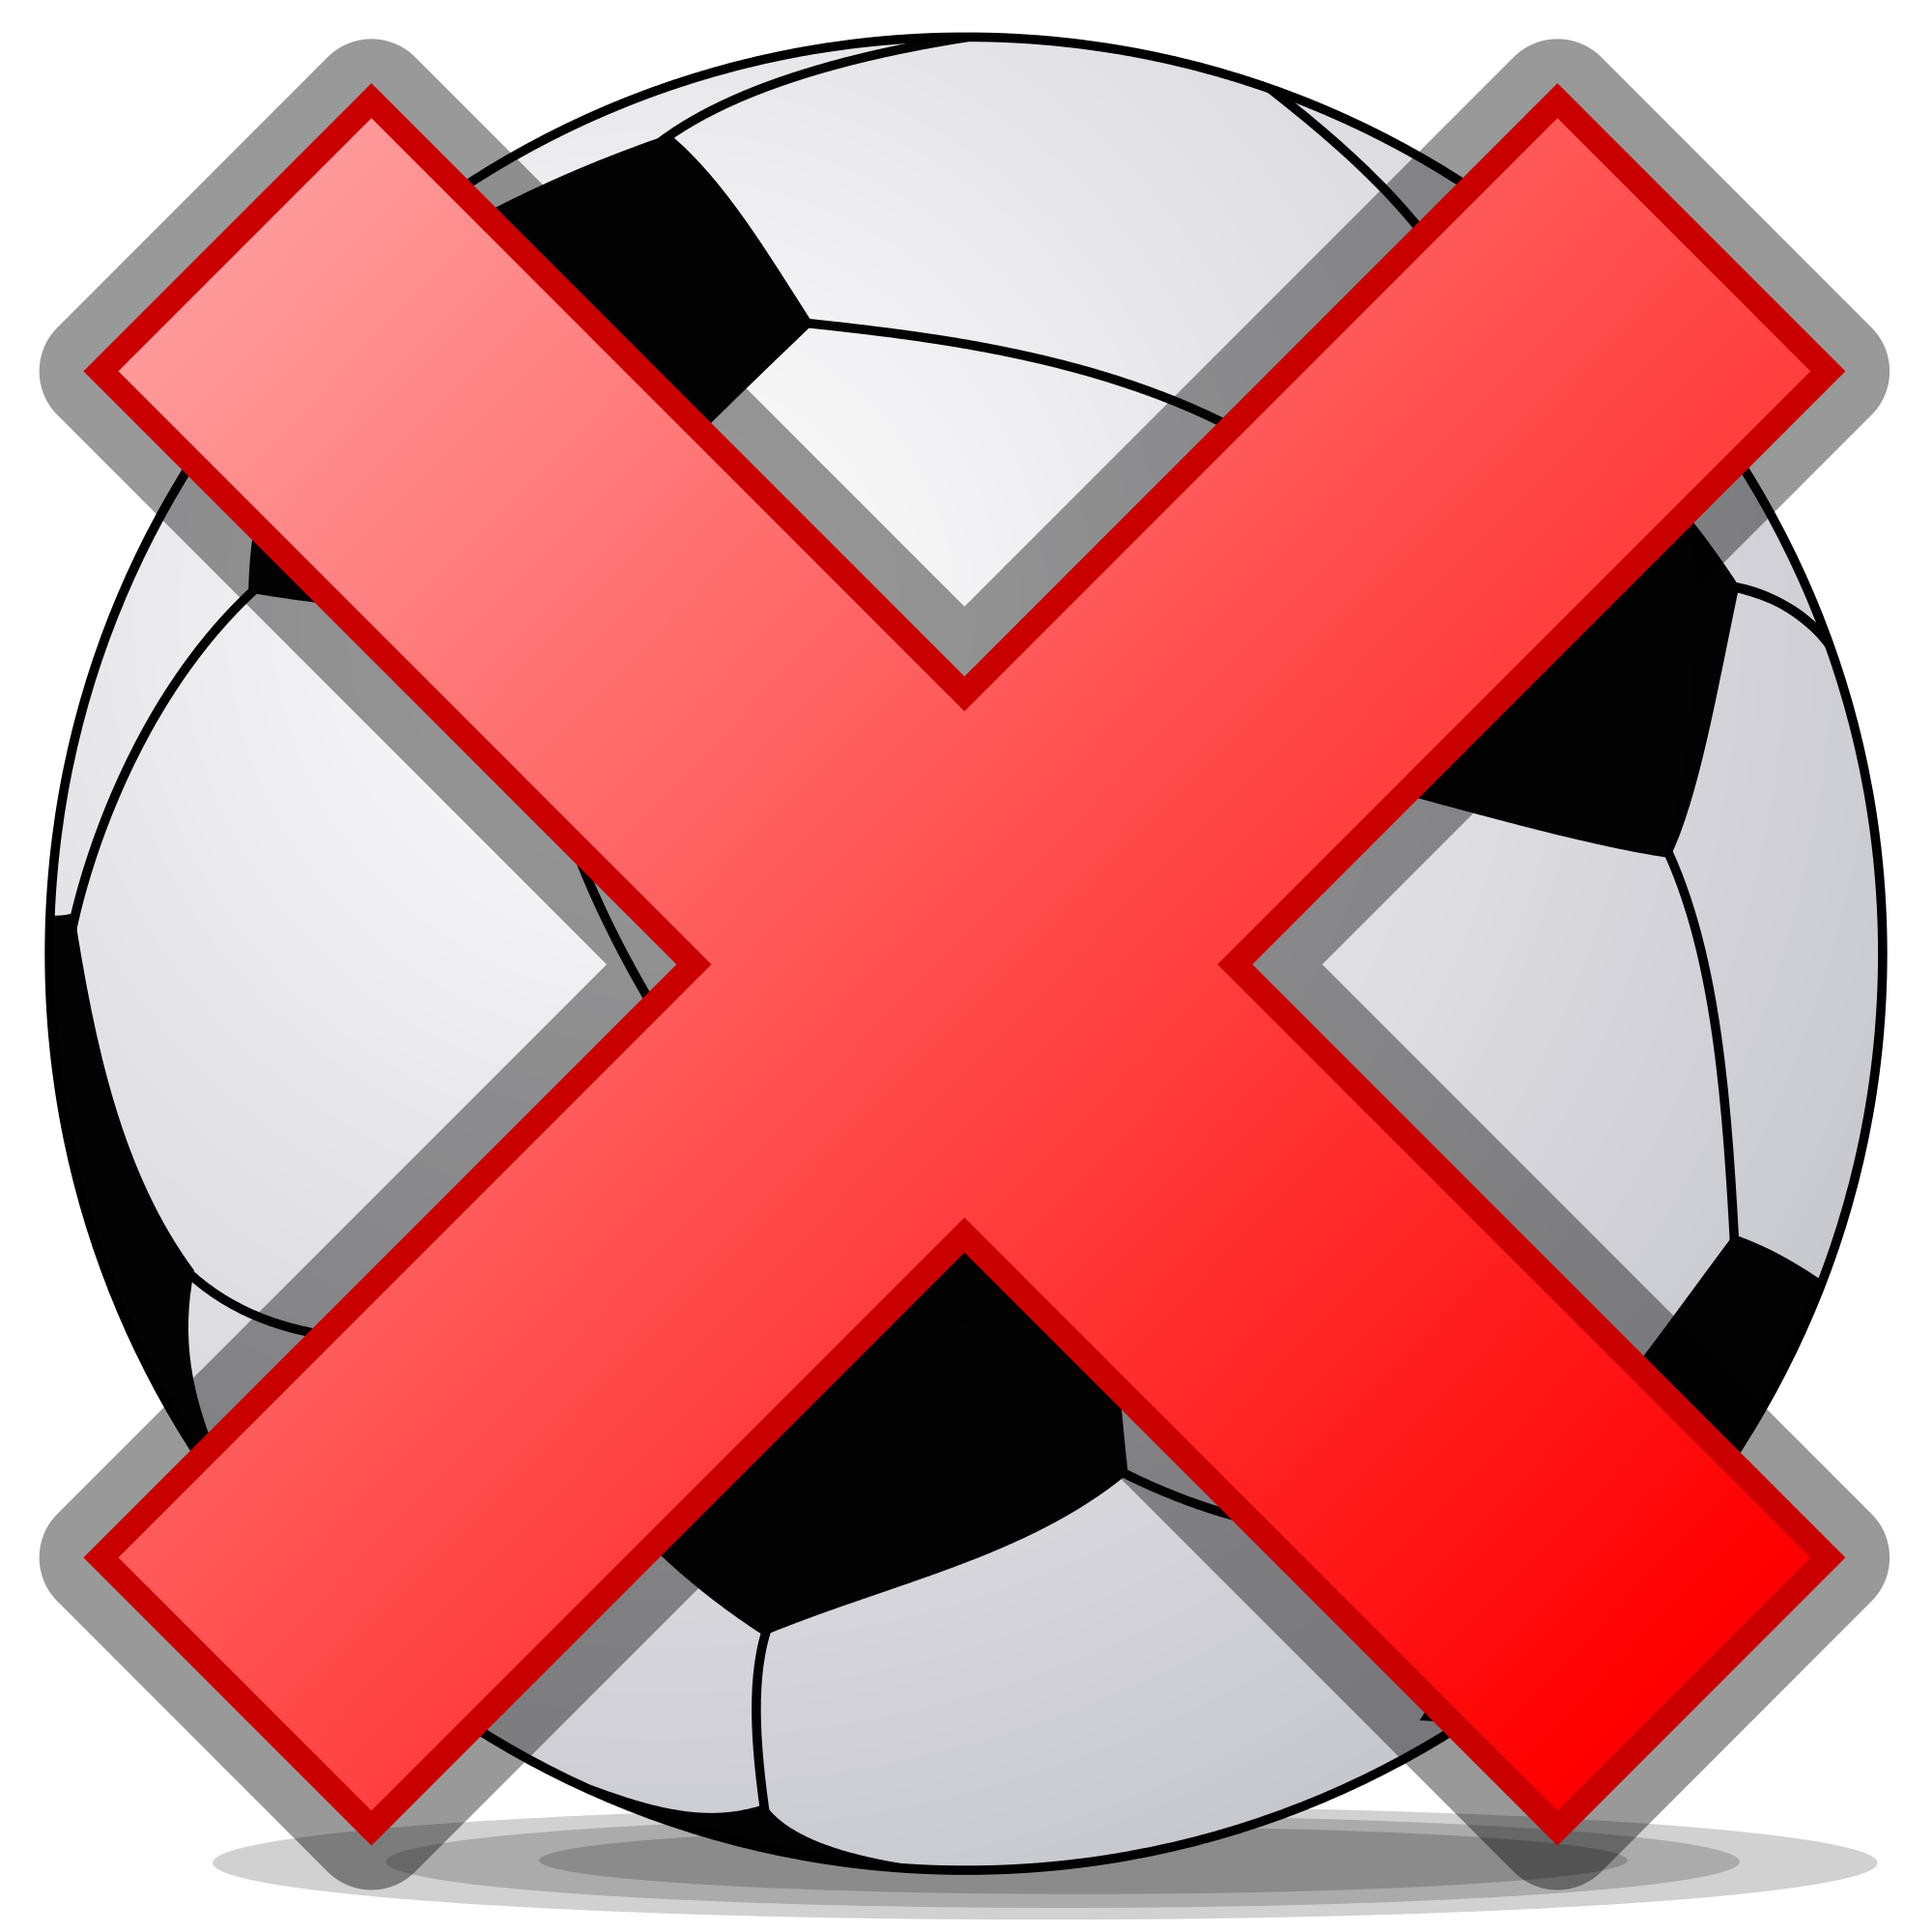 Cross out clipart clipart library File:Soccerball shade cross.svg - Wikimedia Commons clipart library